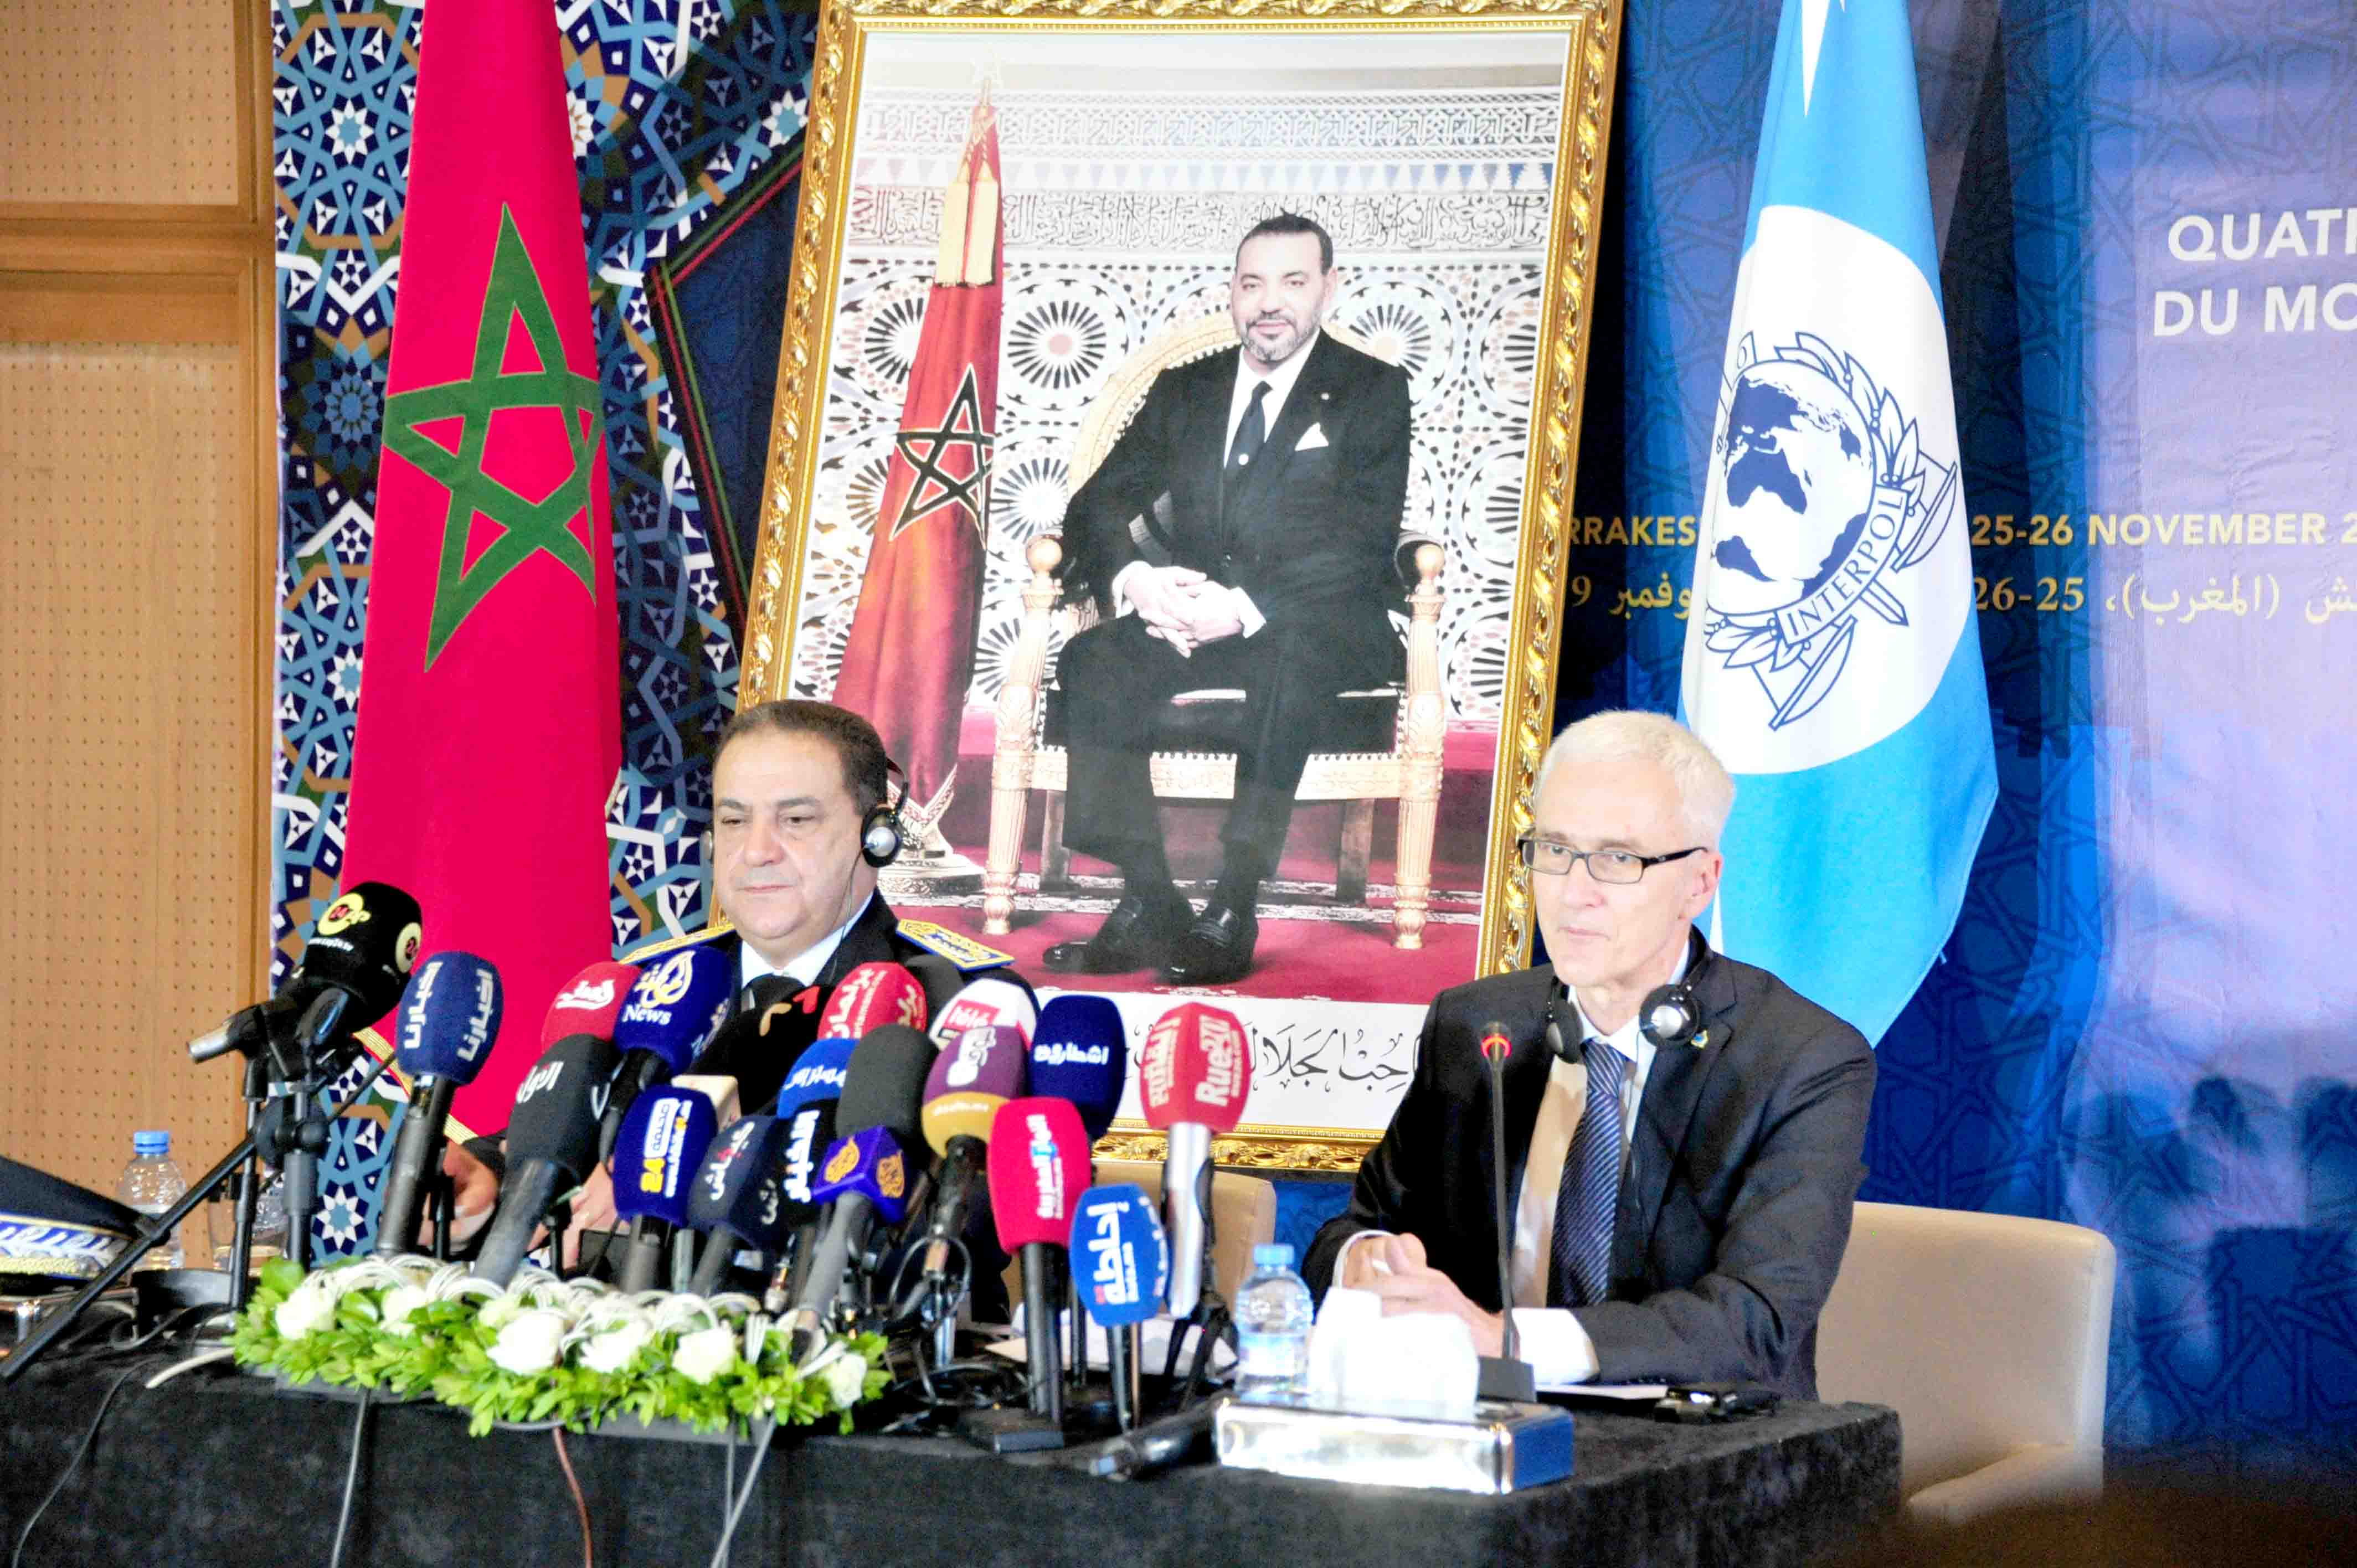 Expert views. Interpol Secretary-General Jurgen Stock (R) and Mohammed Dkhissi, head of Morocco's judicial police, speak during the opening of the fourth meeting for Chiefs of Police from the Middle East and North Africa, November 25.(Saad Guerraoui)